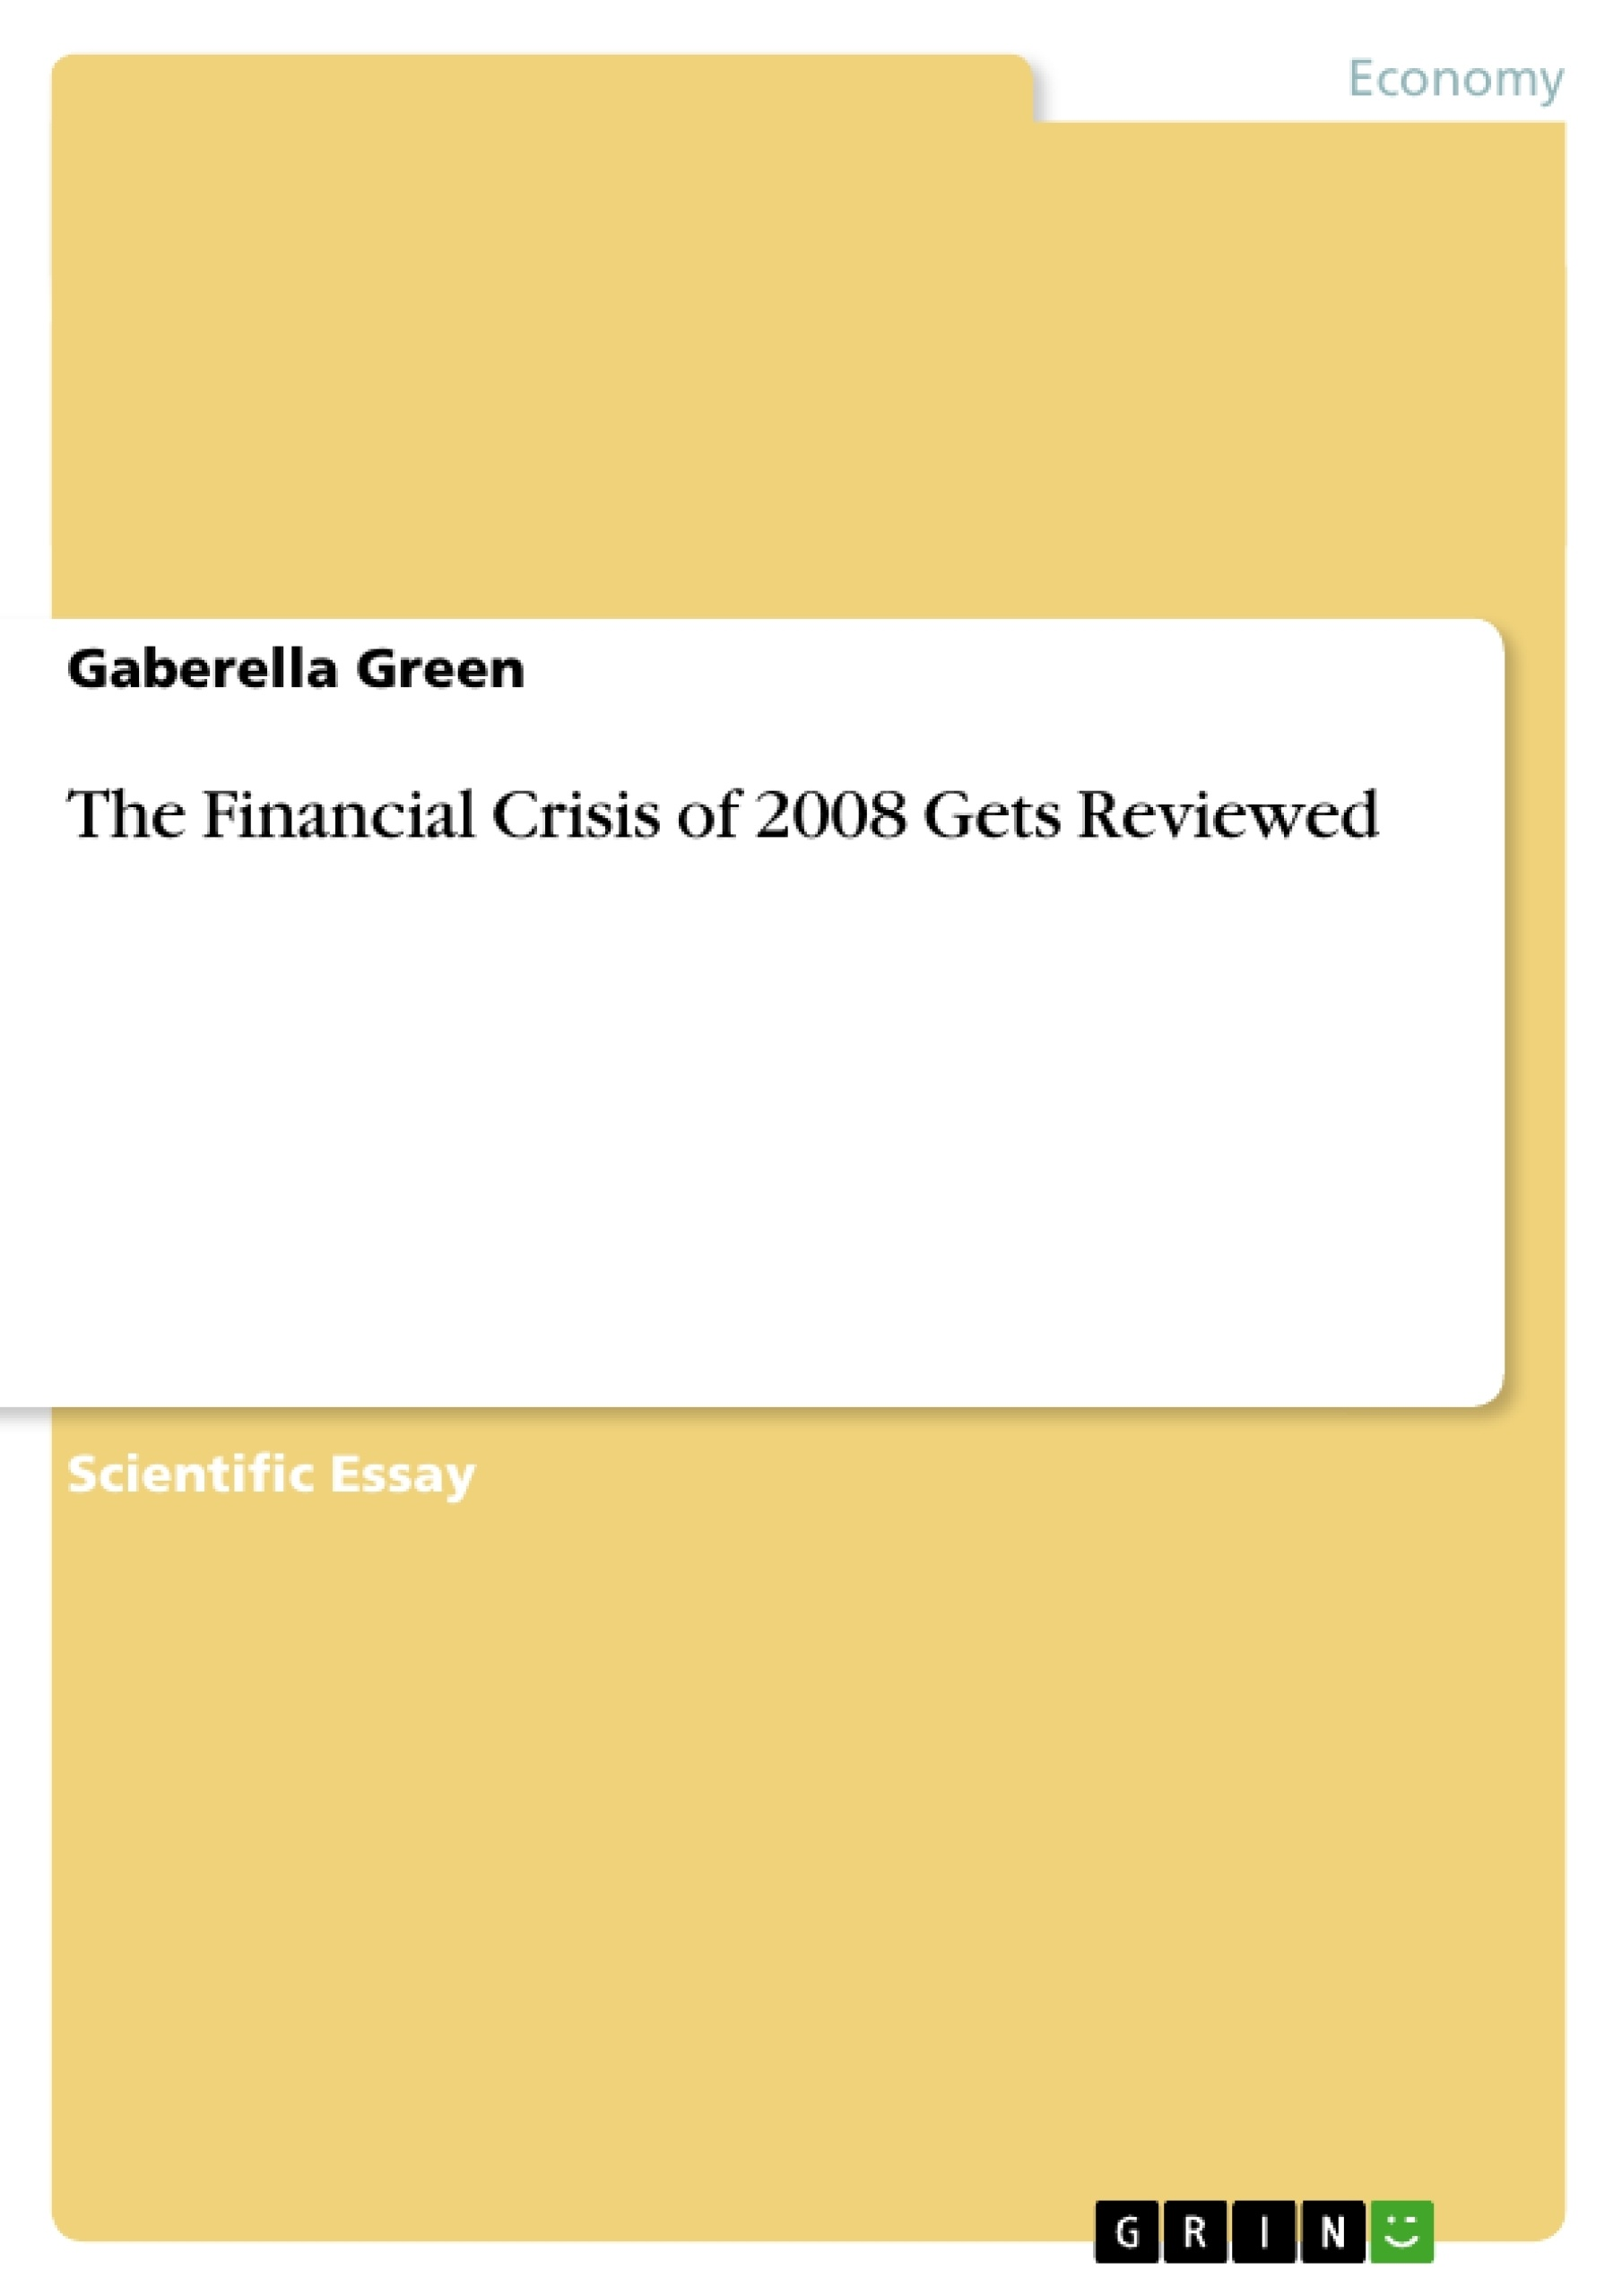 Title: The Financial Crisis of 2008 Gets Reviewed